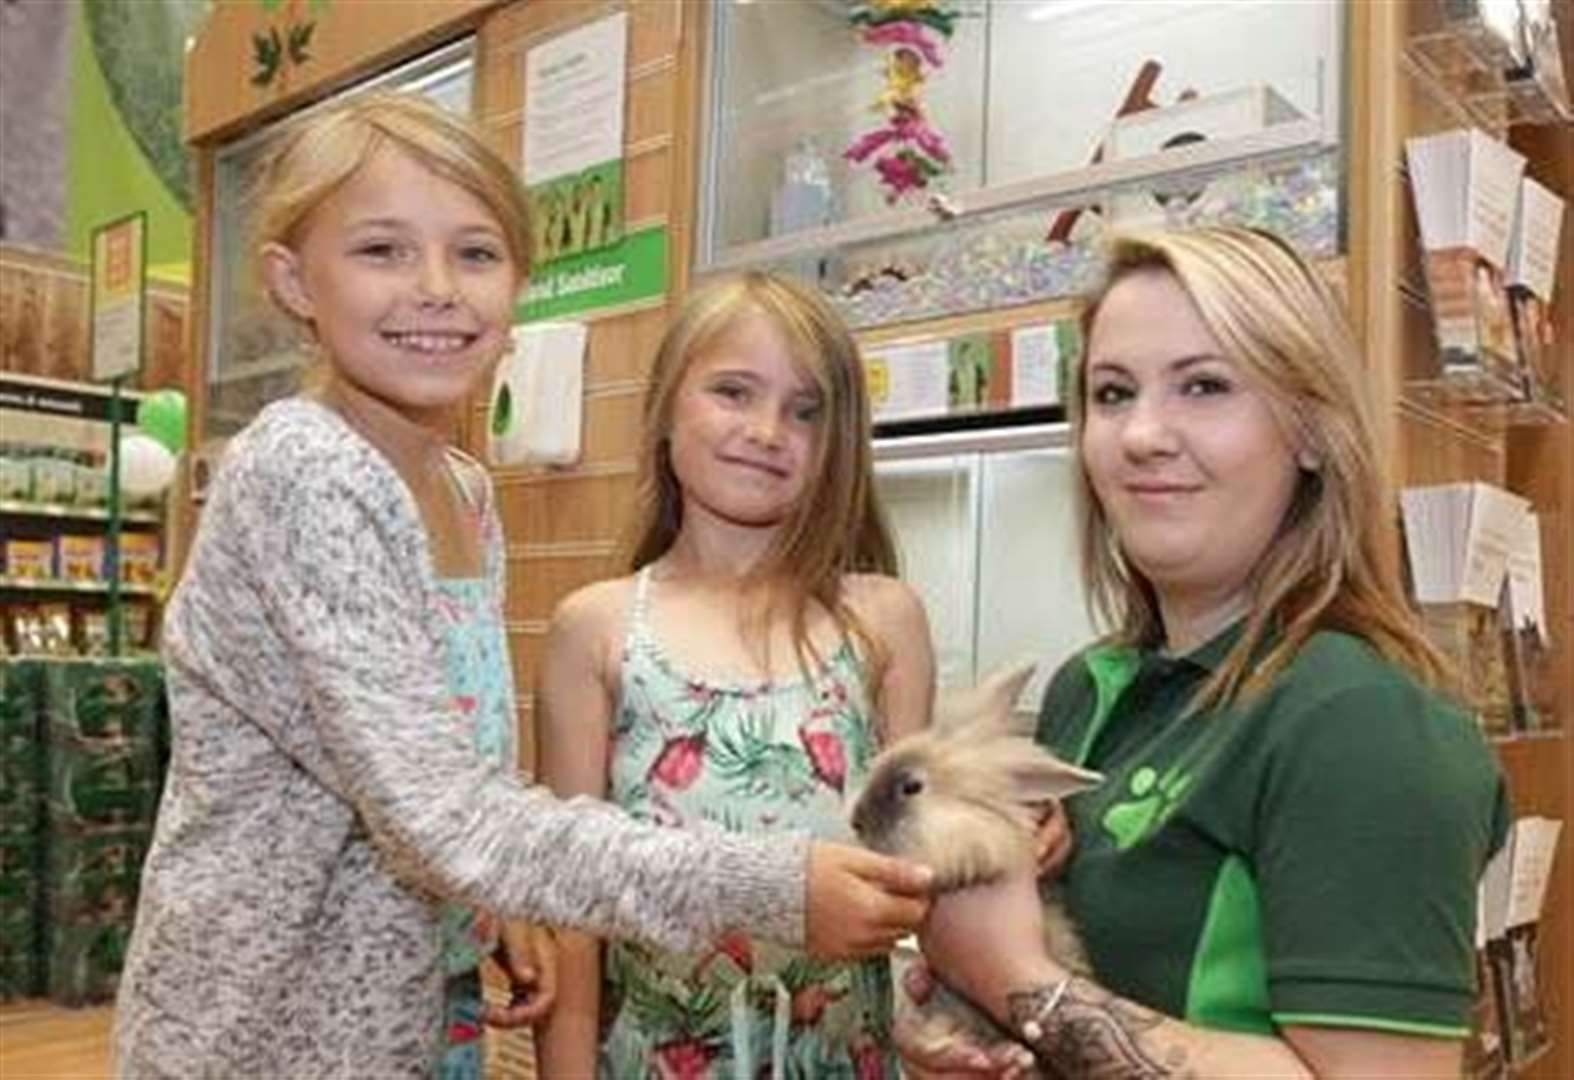 Last chance to enjoy free pet workshops at Grantham store before school starts